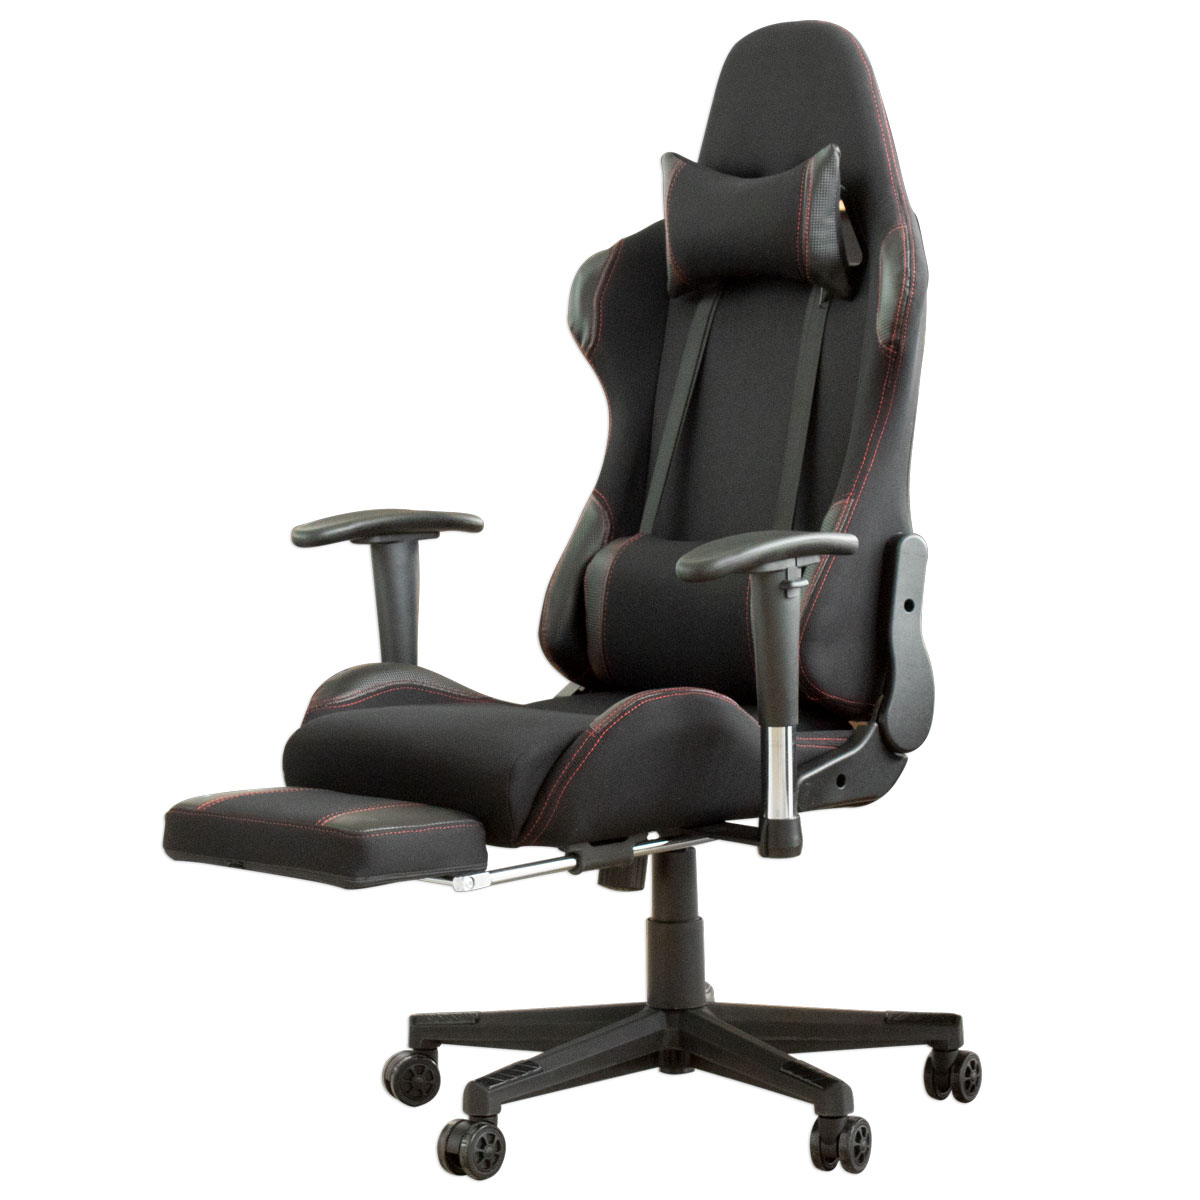 SILLON GAMER ELITE